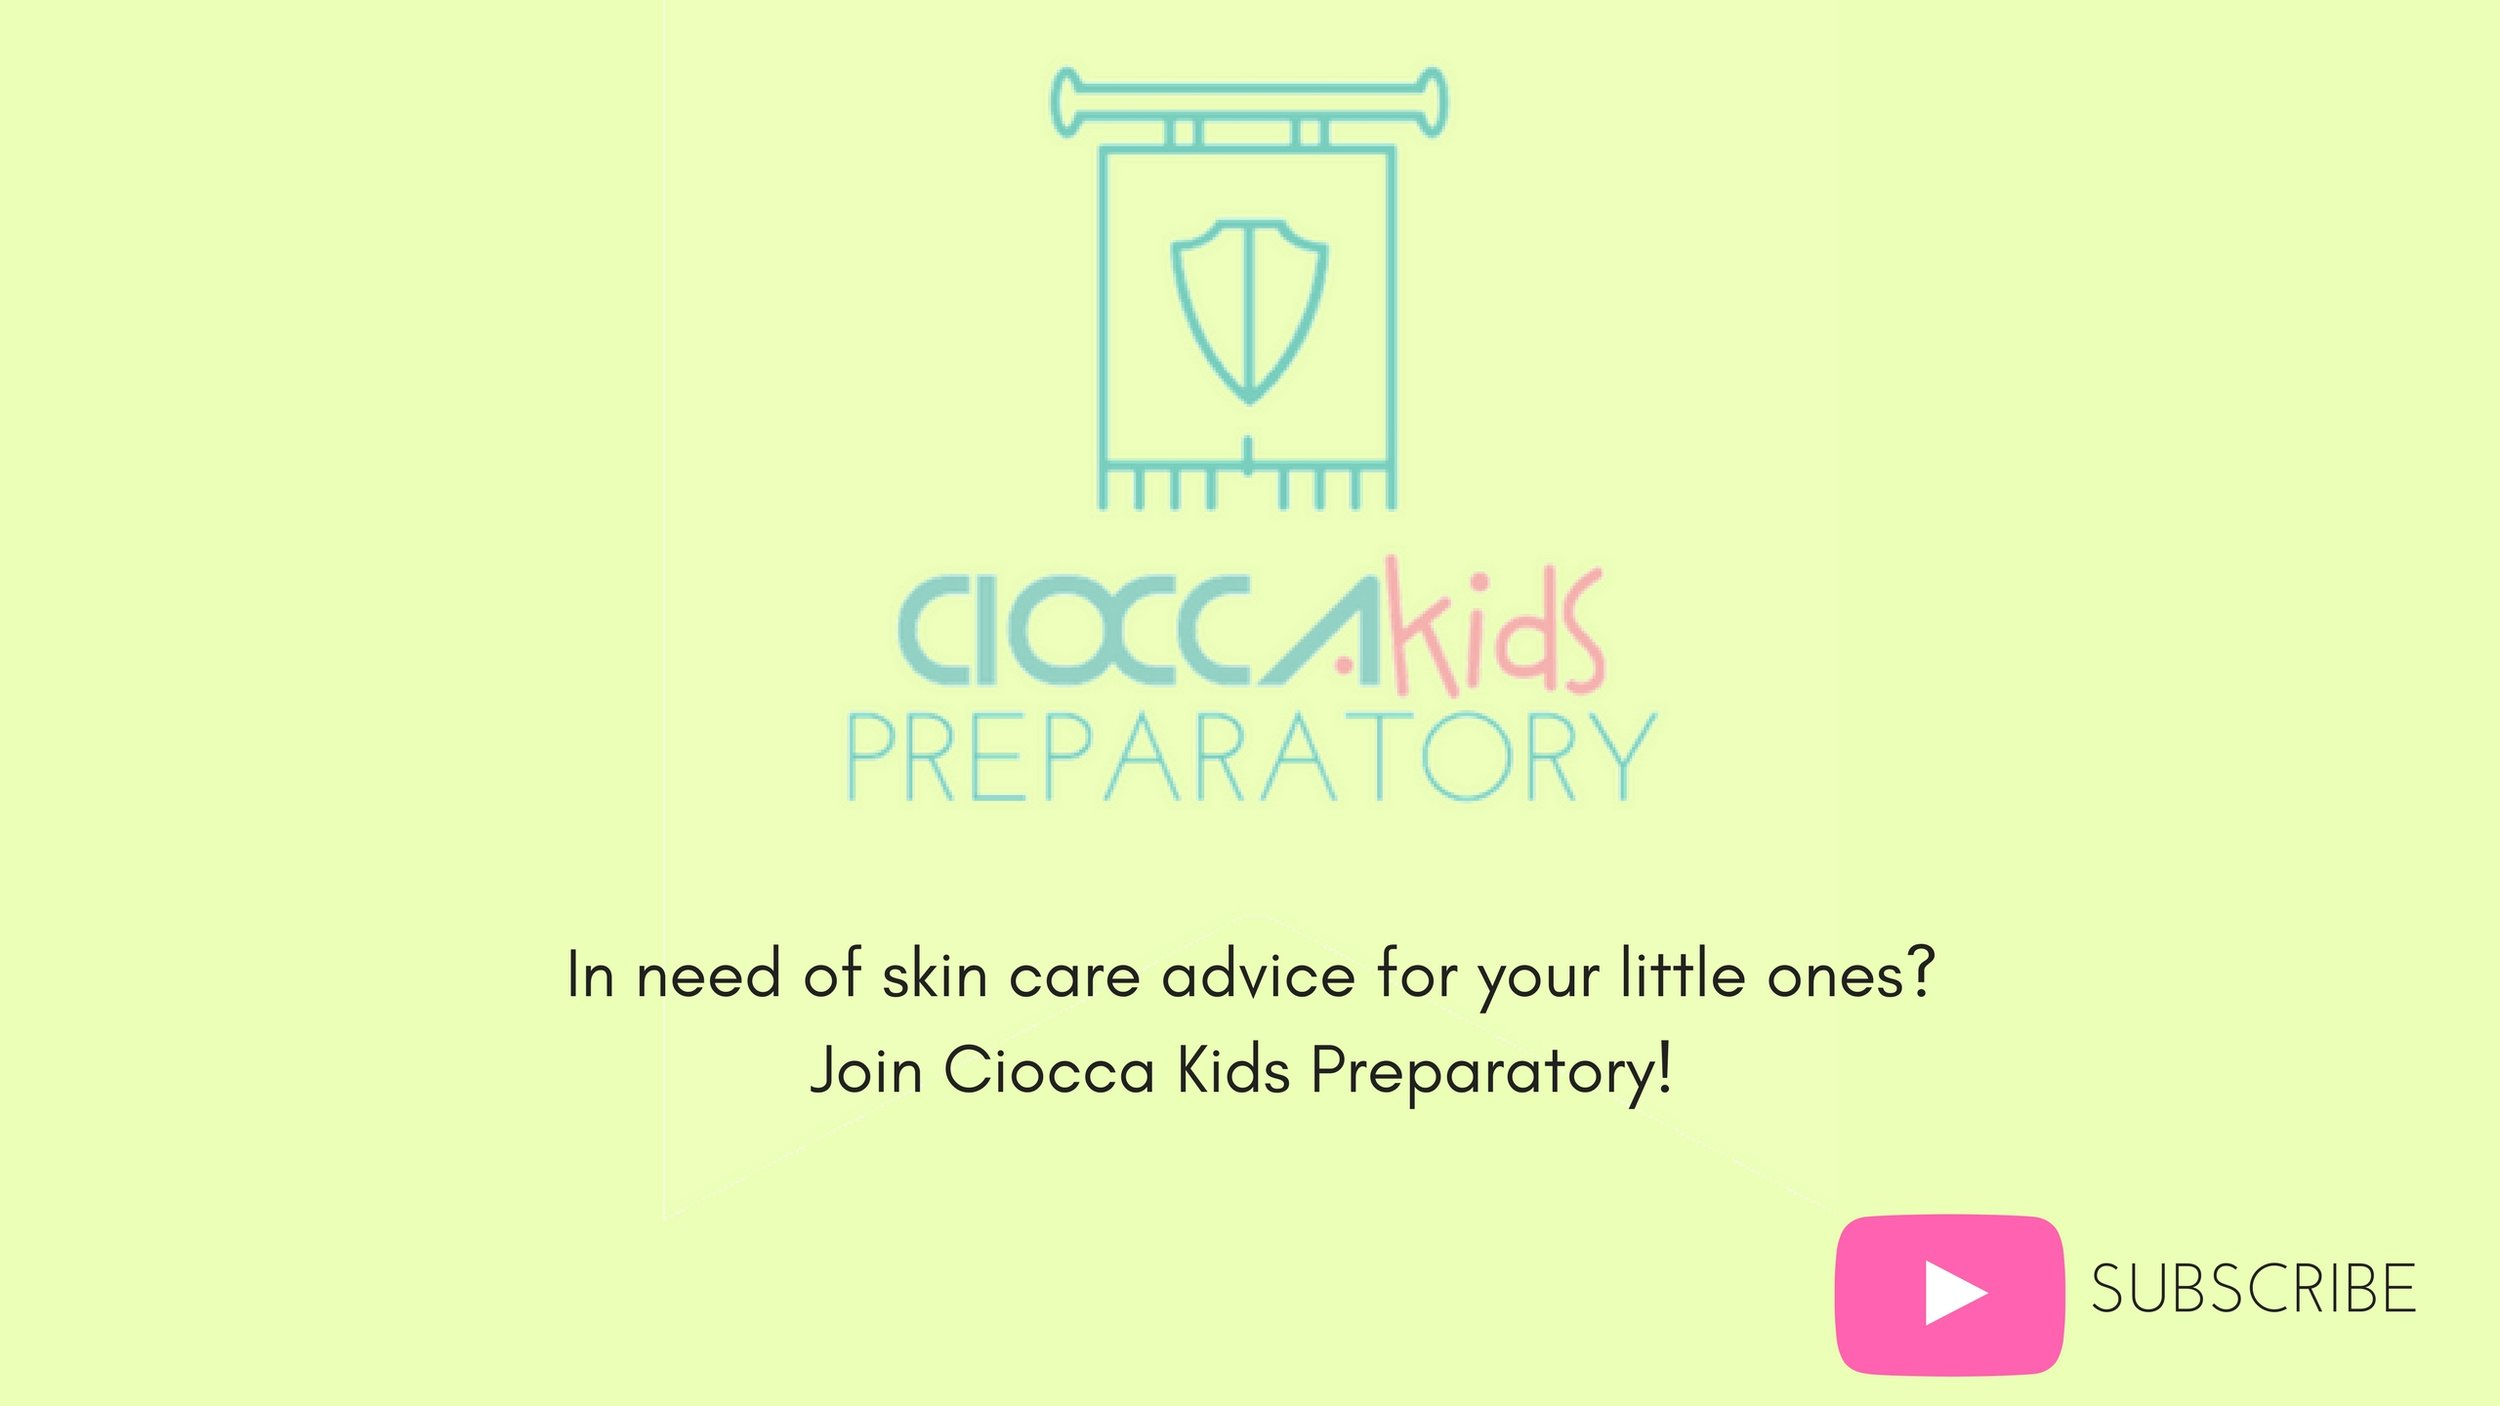 In need of skin care advice for your little ones_ Join Ciocca Kids Preparatory!.jpg